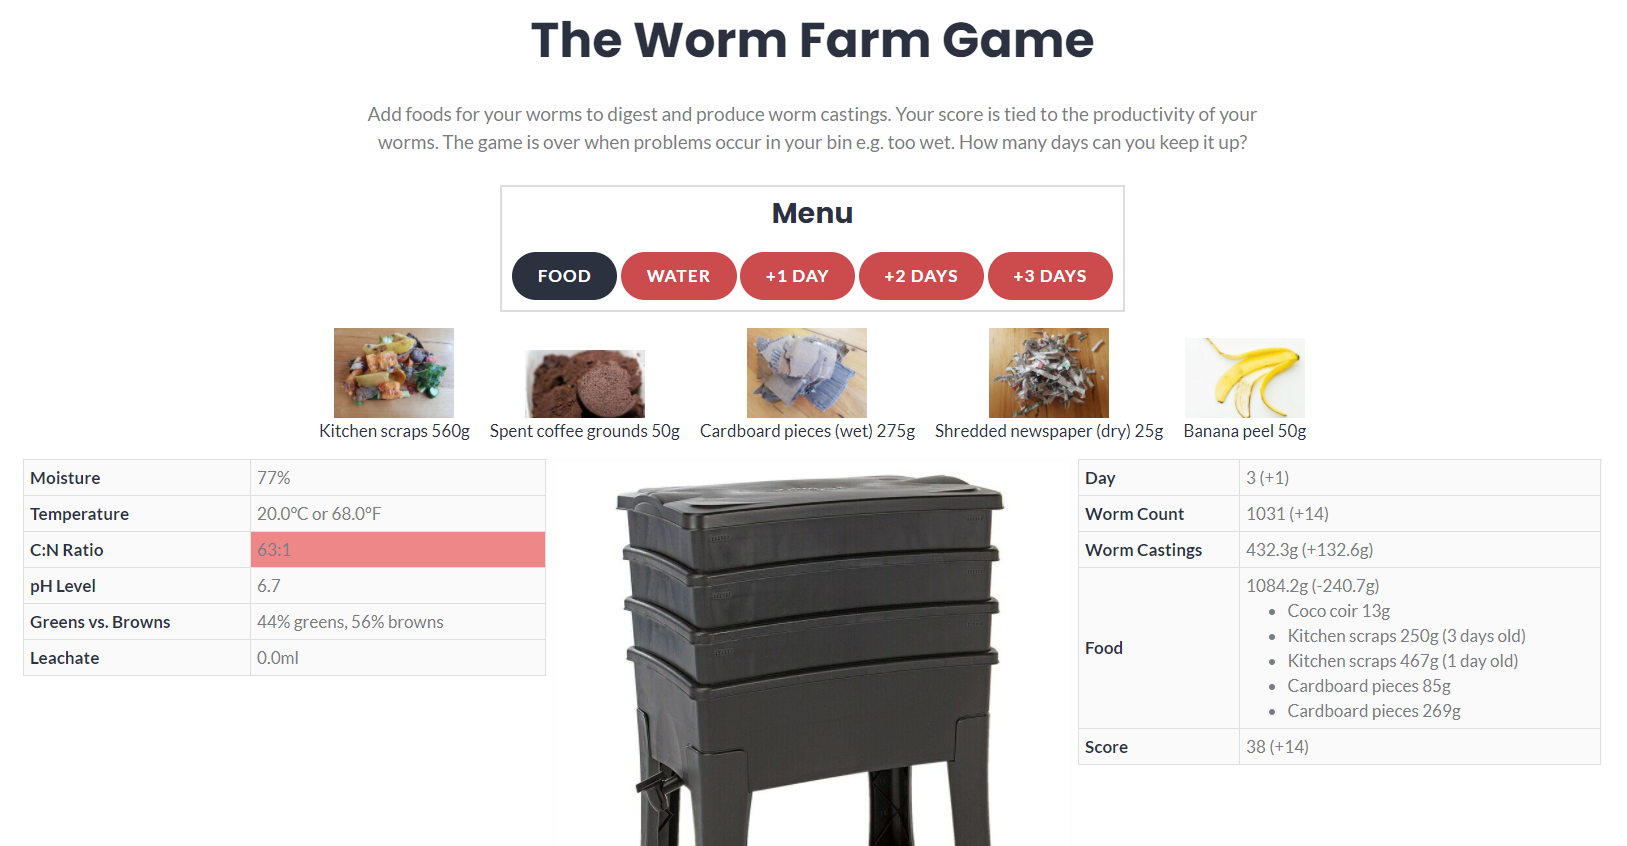 Add foods for your worms to digest and produce worm castings. The worm farm game is over when problems occur e.g. too wet.